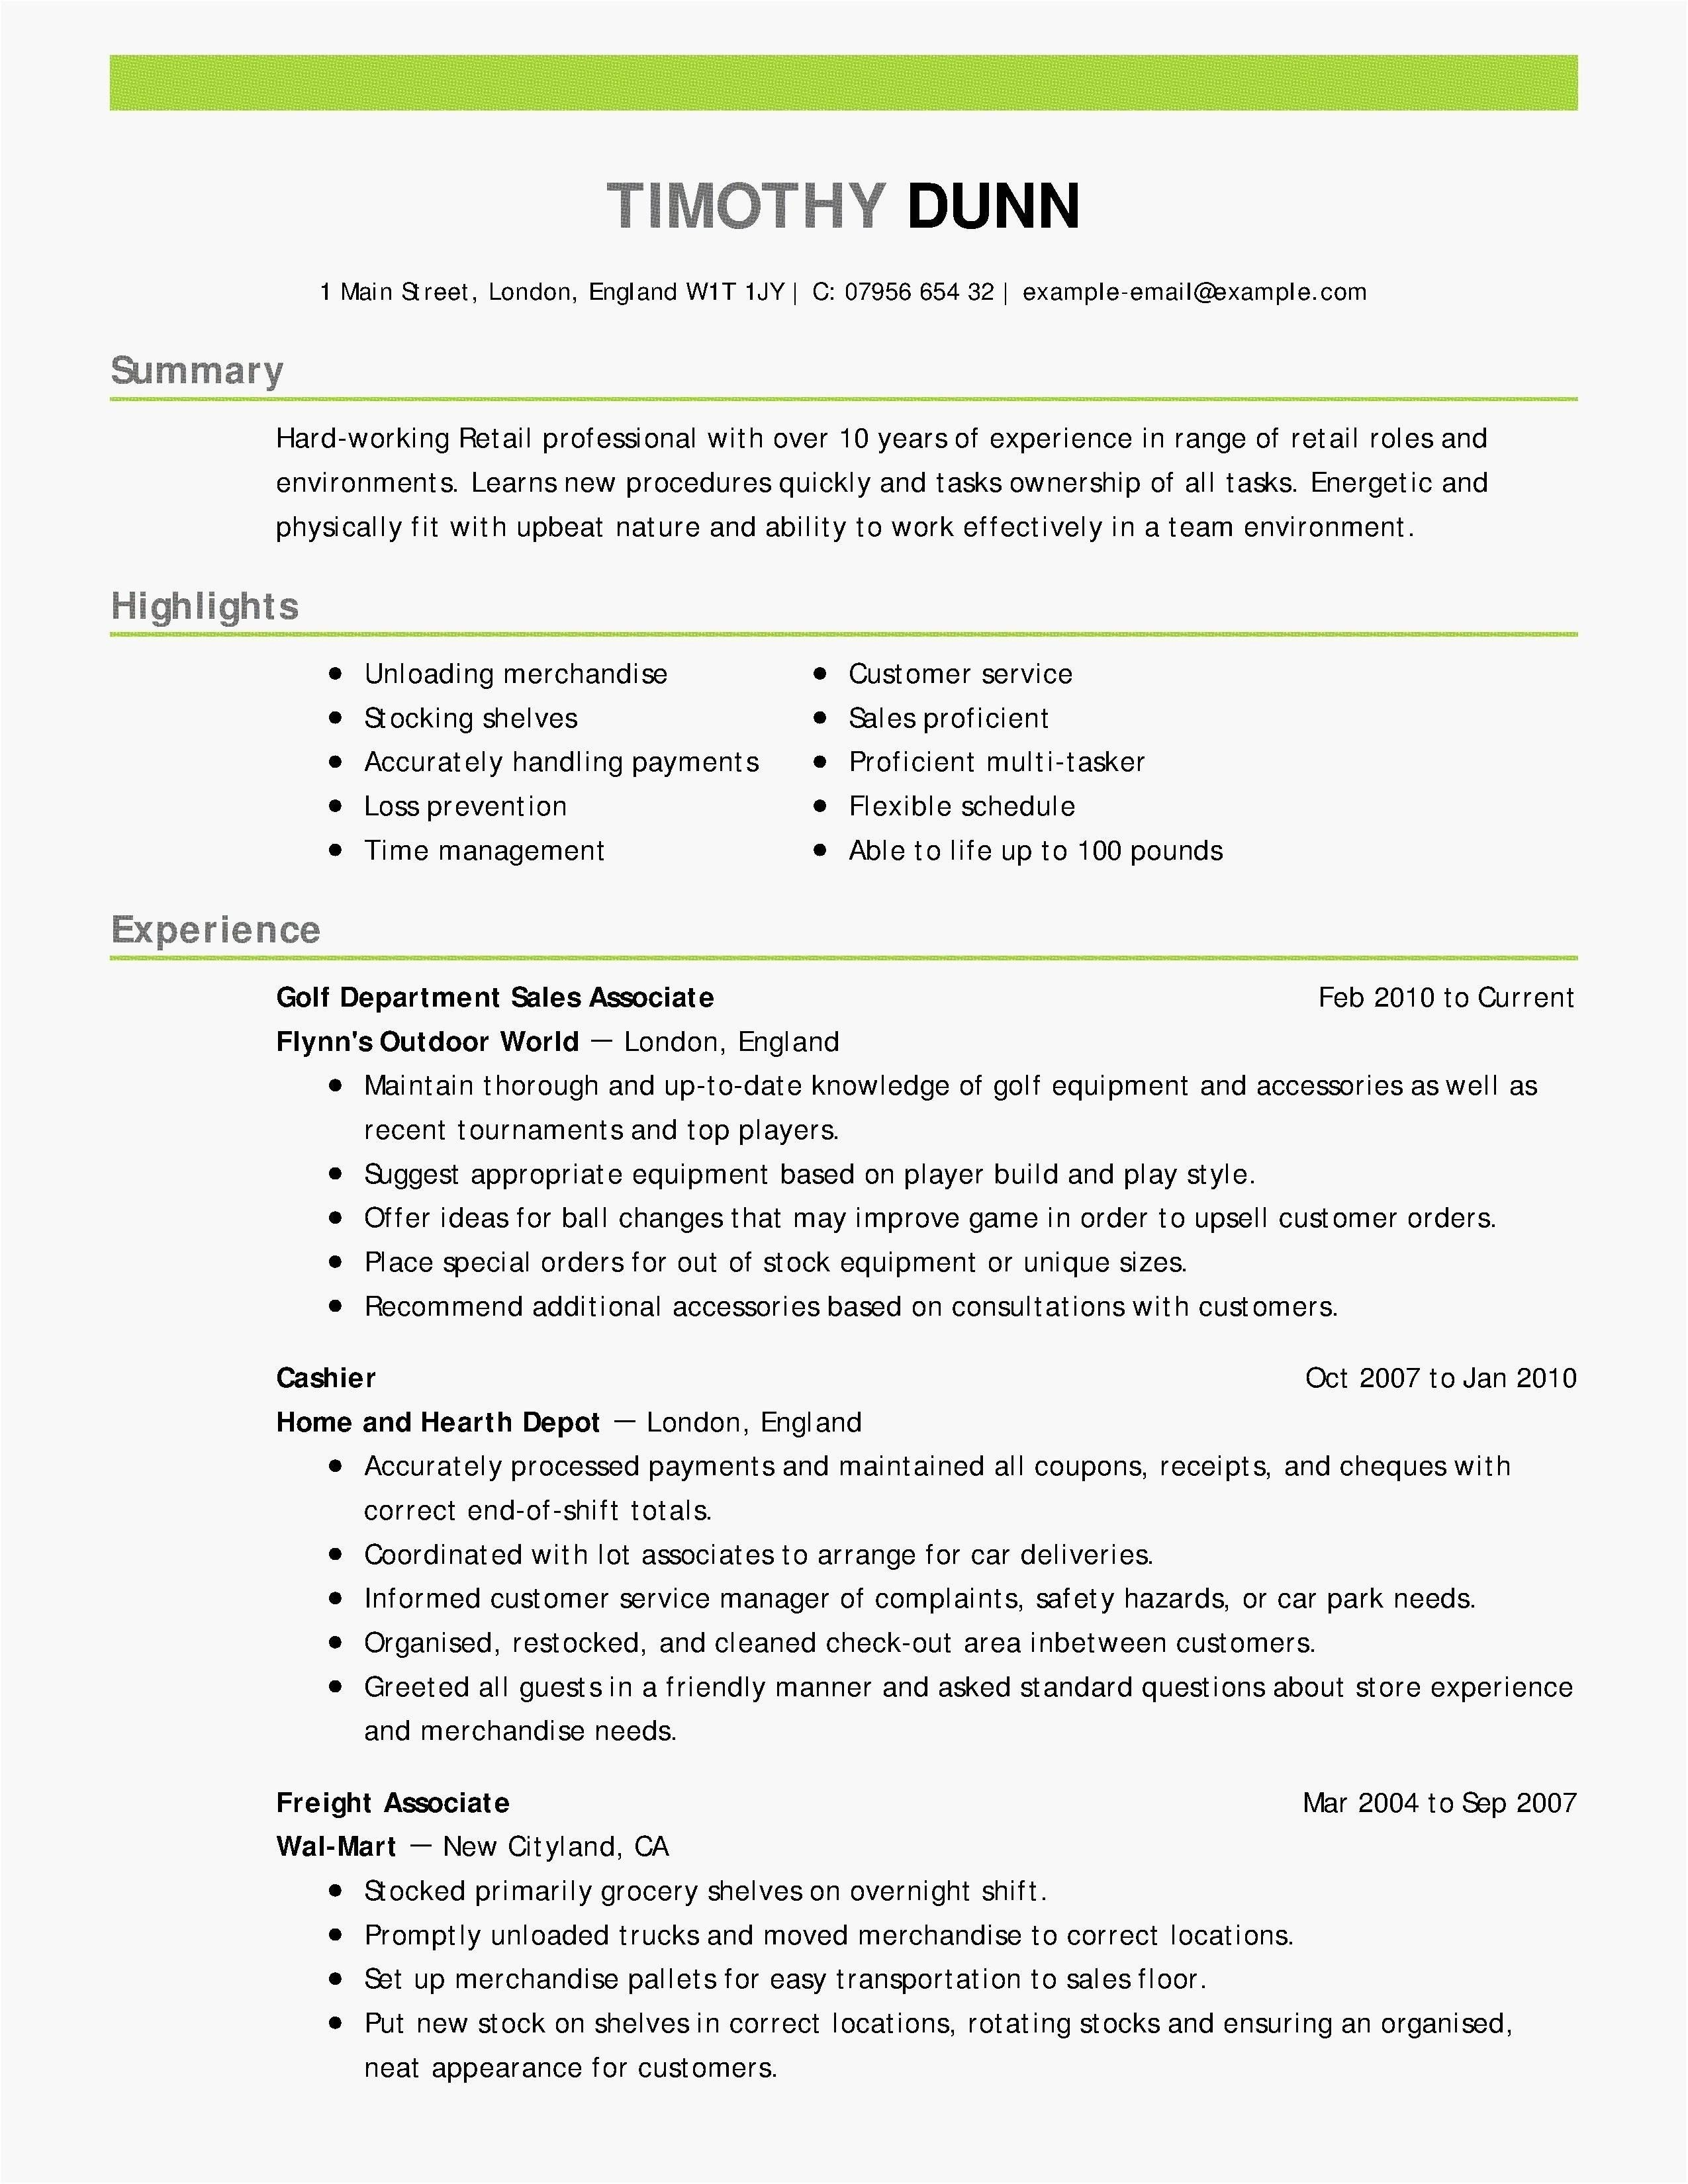 3 Basic Cover Letter Designs Resume Objective Examples Customer Service Resume Examples Good Resume Examples